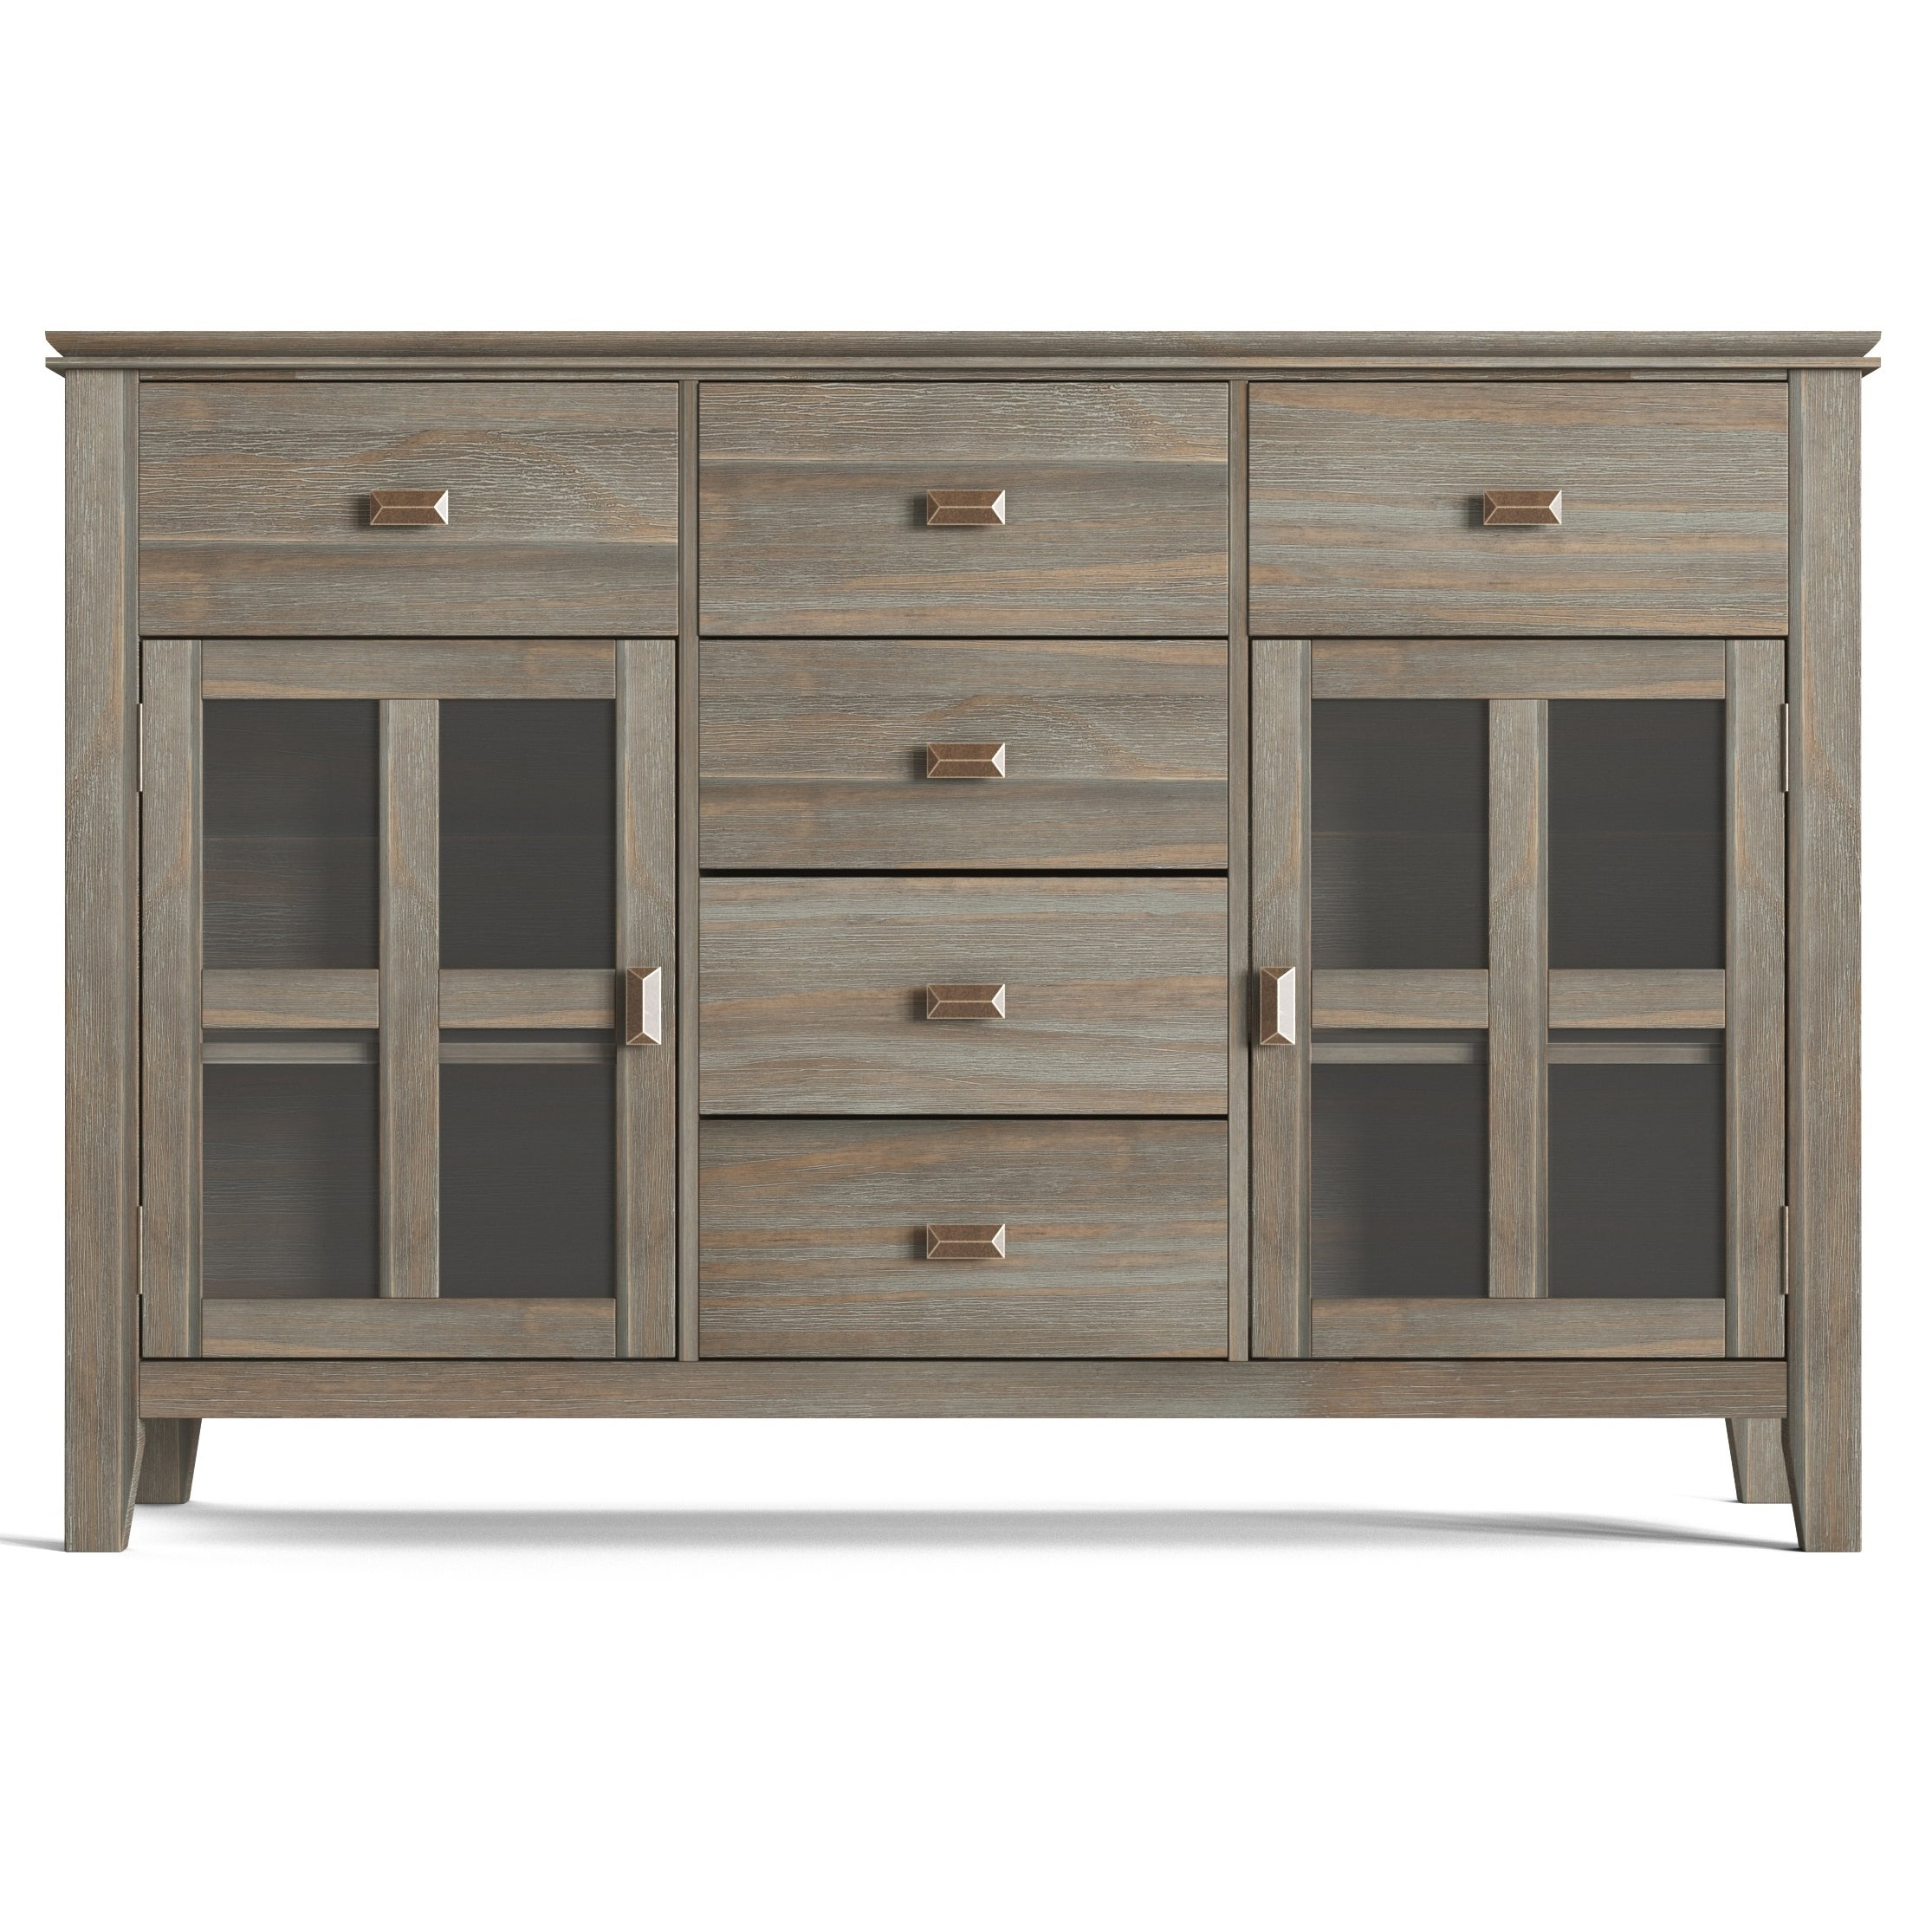 Wyndenhall Stratford Solid Wood 54 Inch Wide Contemporary Sideboard Buffet Credenza – 54 Inch Wide Intended For Solid Wood Contemporary Sideboards Buffets (View 29 of 30)